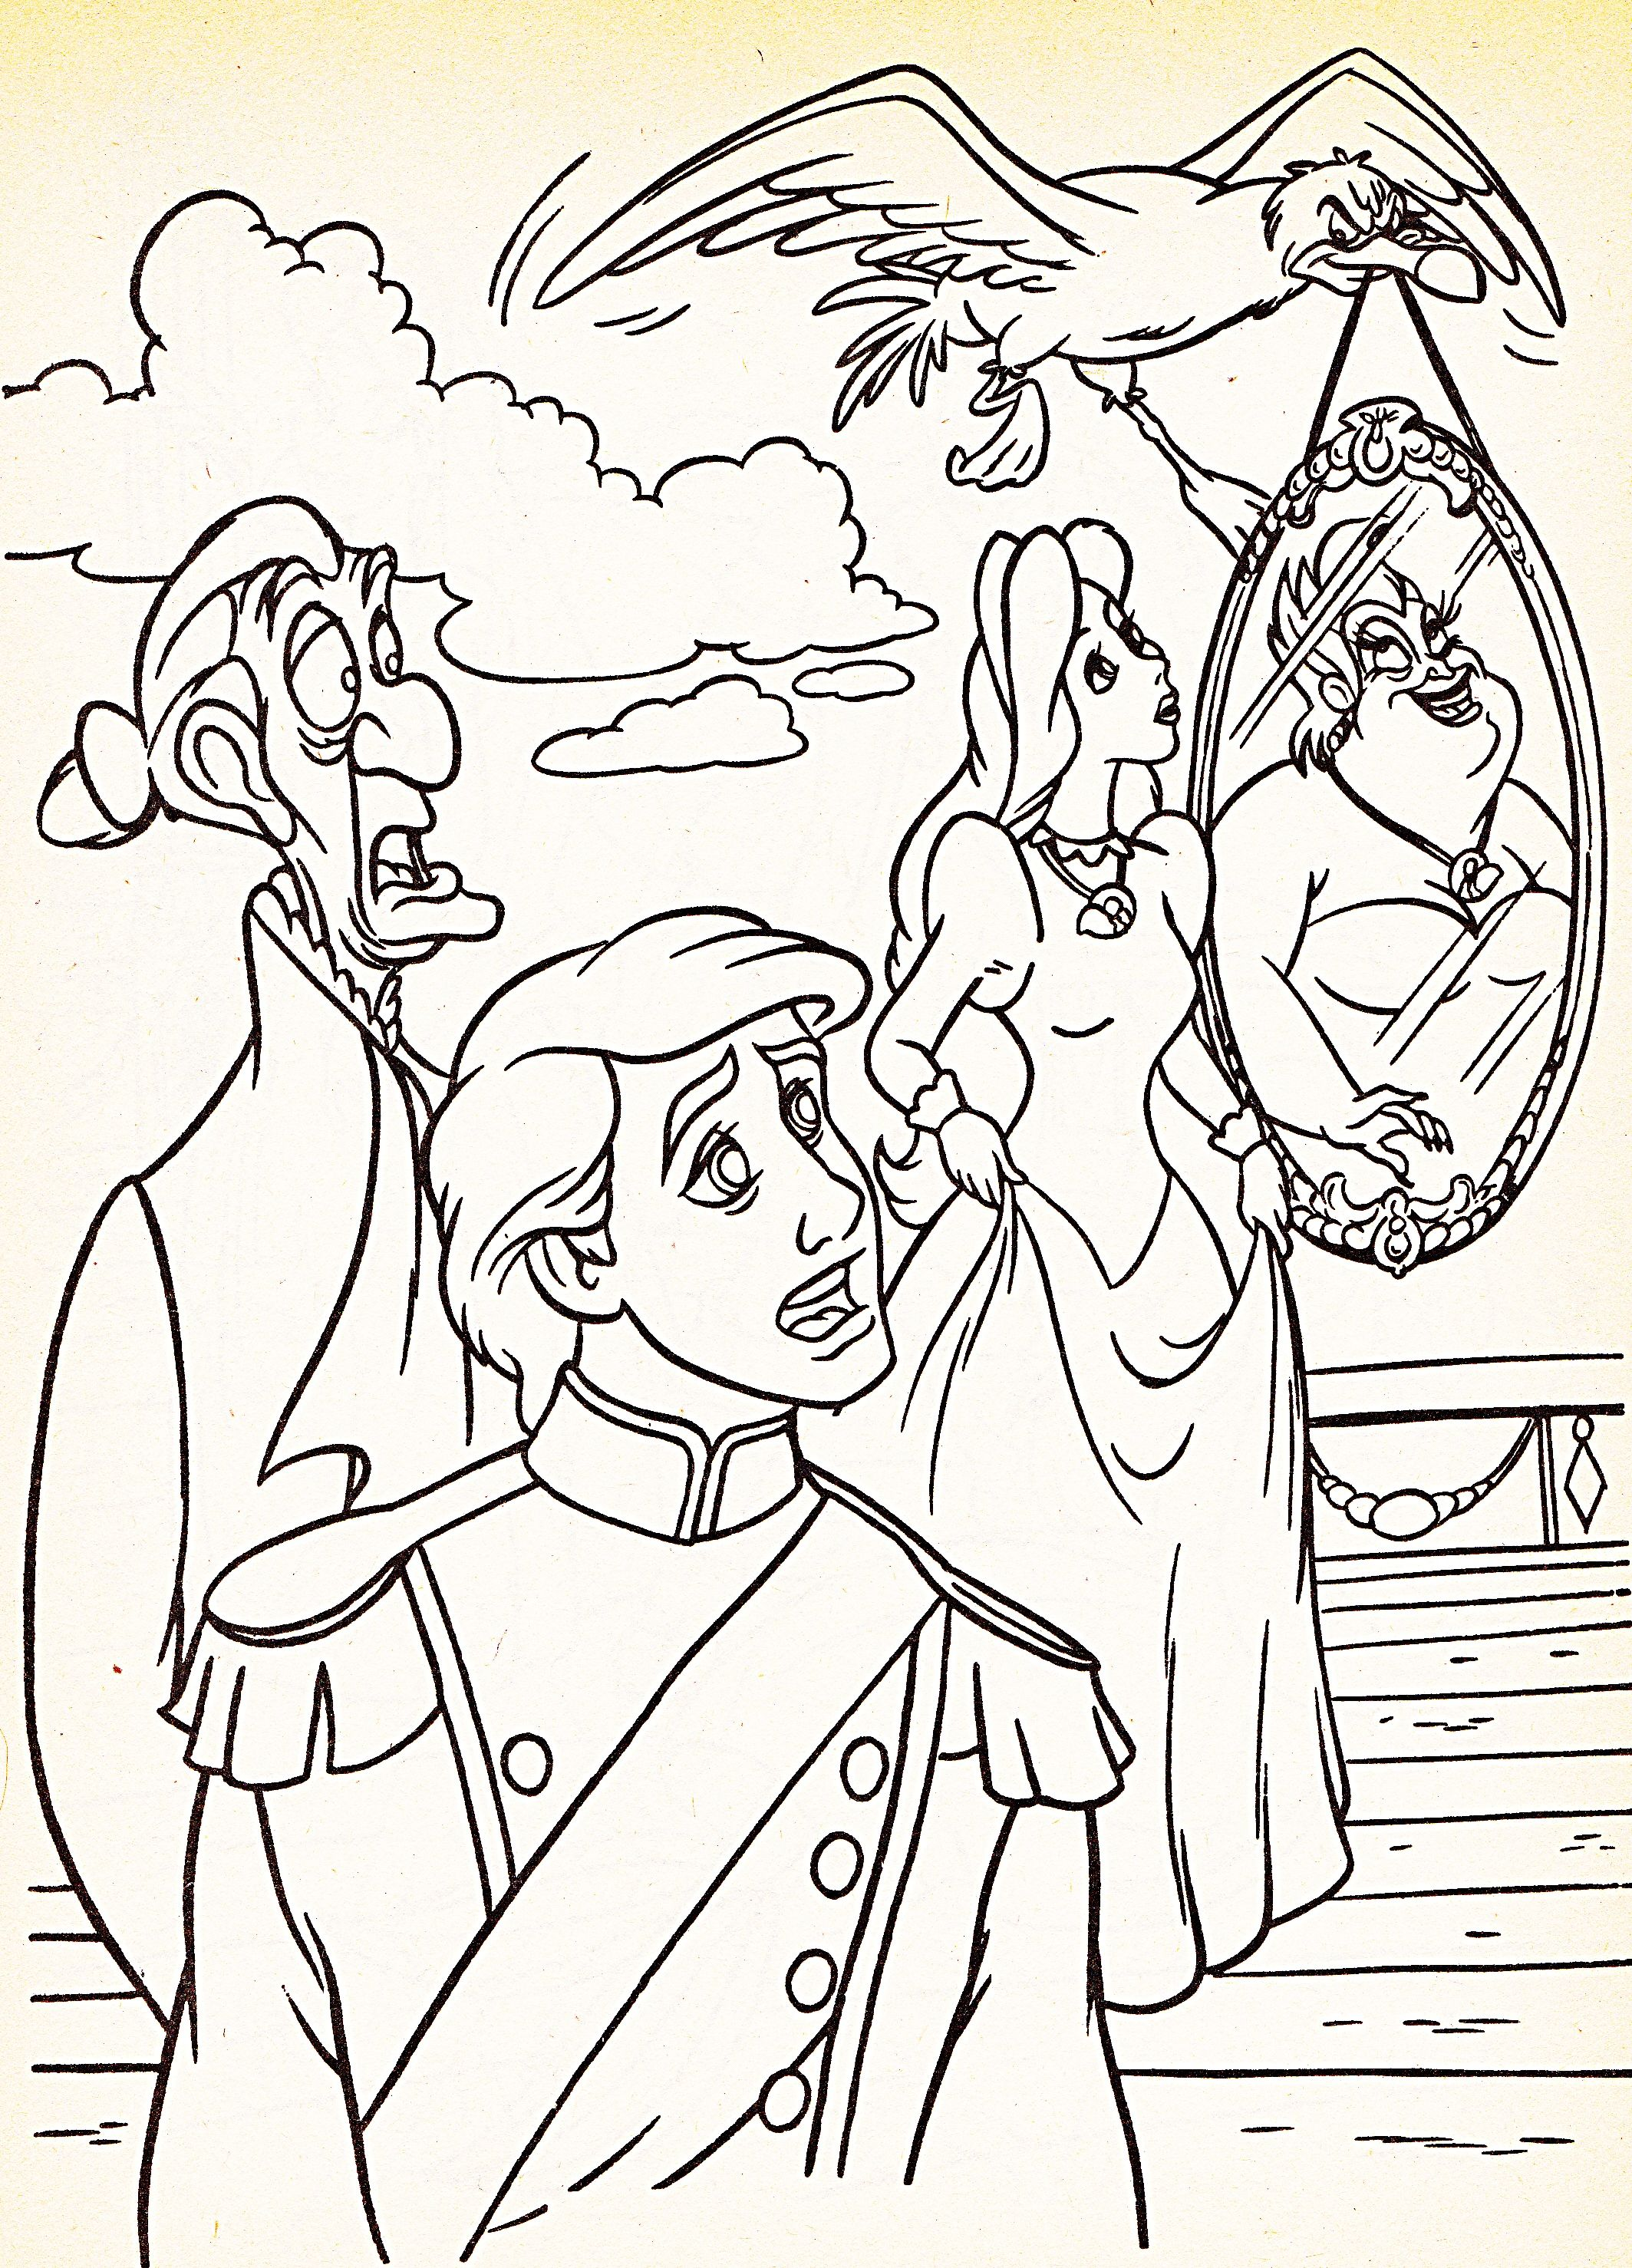 13613 Coloring Pages Sir Grimsby Prince Eric Scuttle Vanessa Ursula Jpg Jpeg Image 2127 2956 Pix Ariel Coloring Pages Coloring Pages Mermaid Coloring Pages